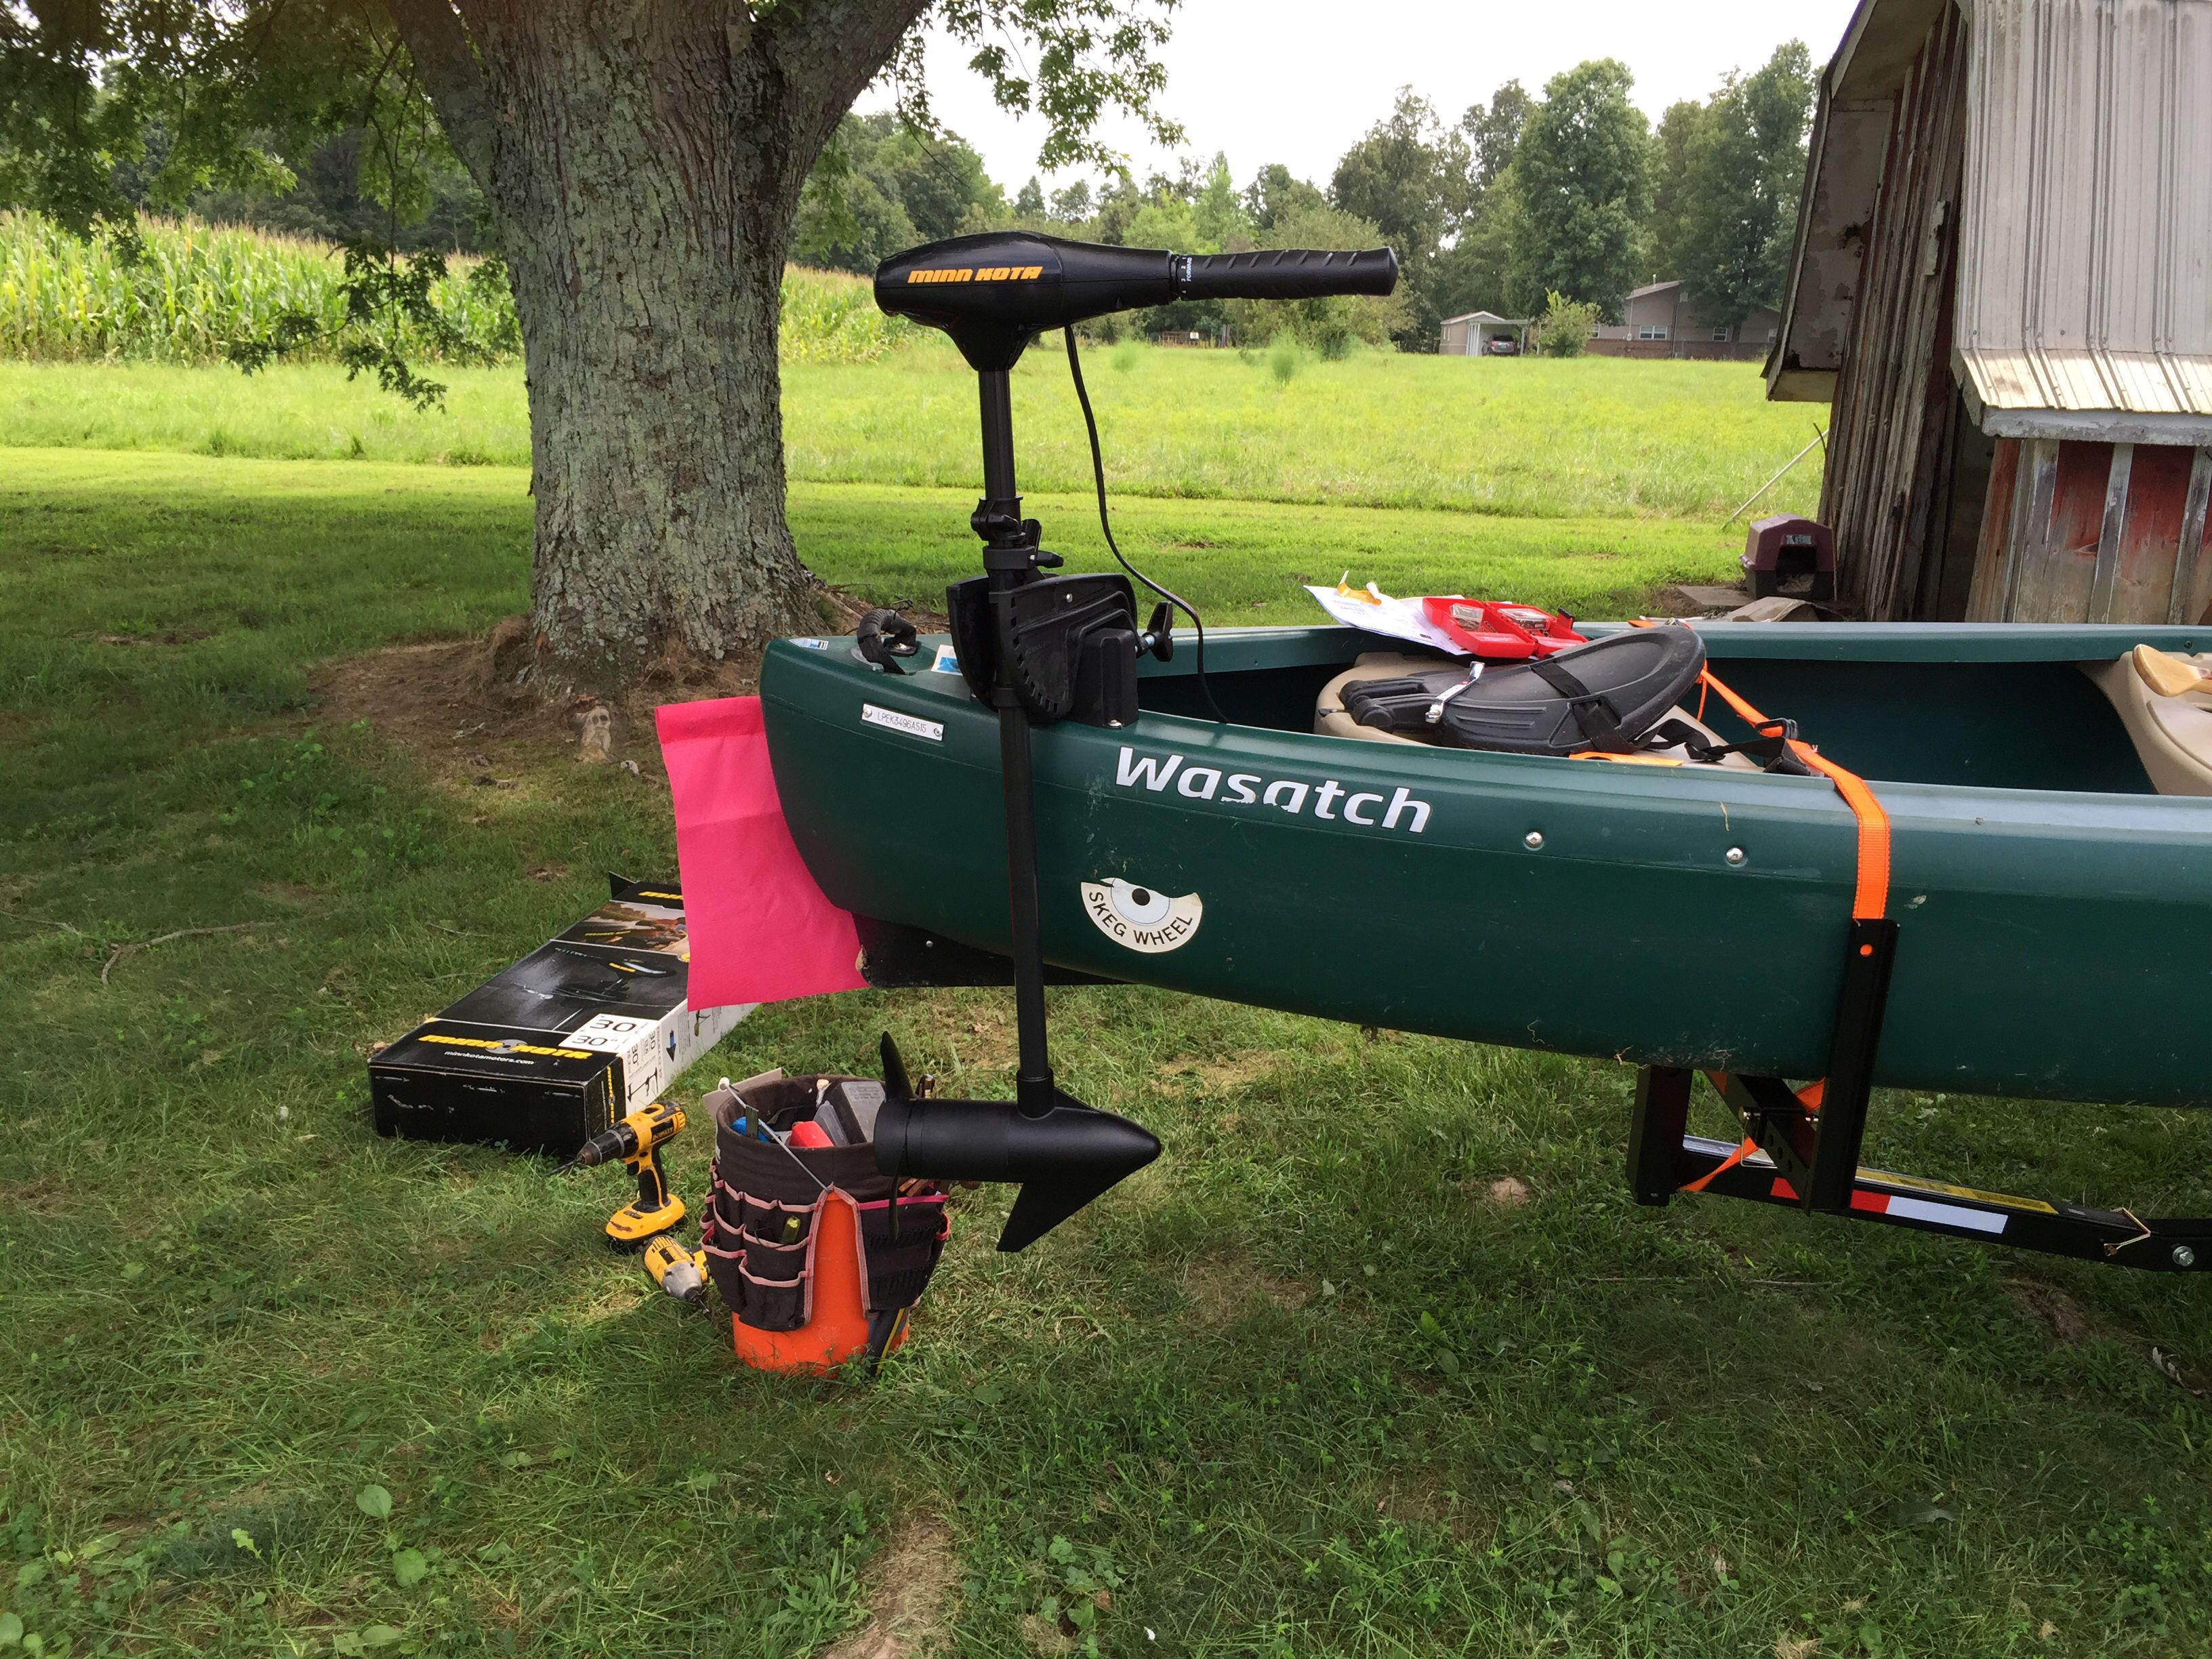 Mounted Trolling Motor On The Mount Provided With Emotion